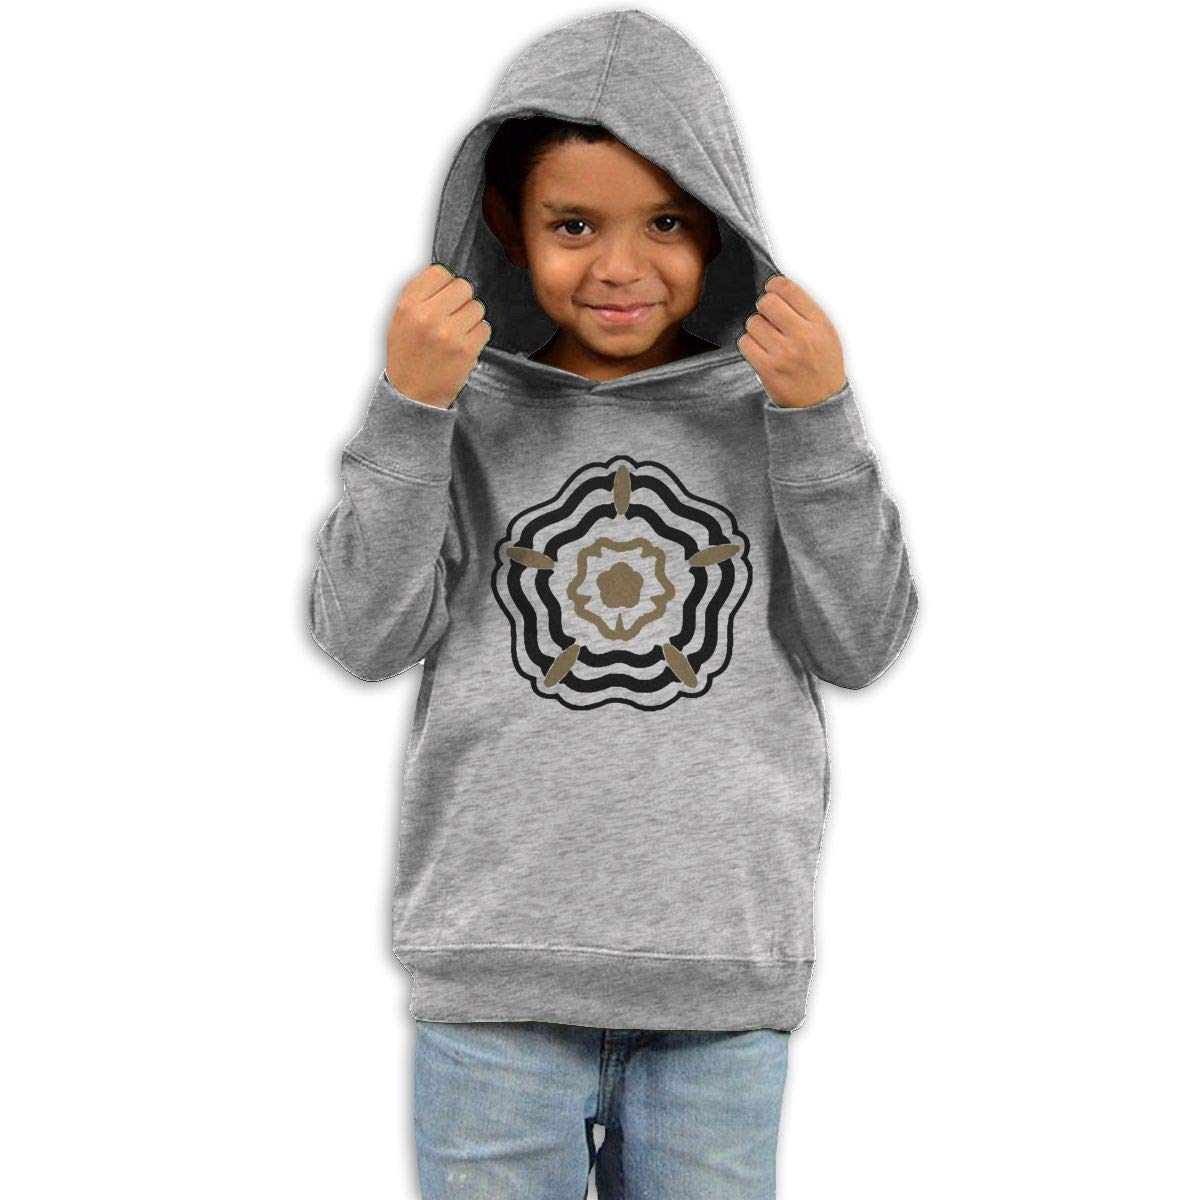 Stacy J. Payne Boys Sam Smith Logo Classic Hoody39 Gray